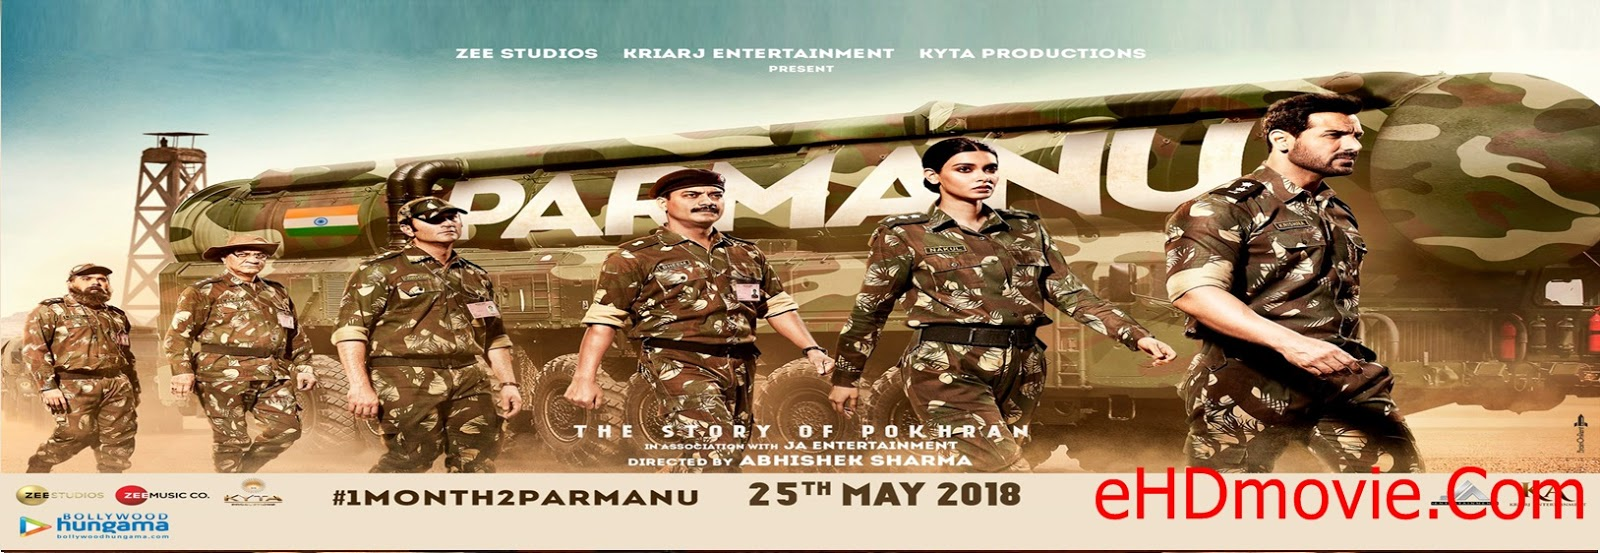 Parmanu: The Story of Pokhran 2018 Full Movie Hindi 1080p - 720p - HEVC - 480p ORG DvDRip 350MB - 550MB - 1.1GB - 2.5GB ESubs Free Download